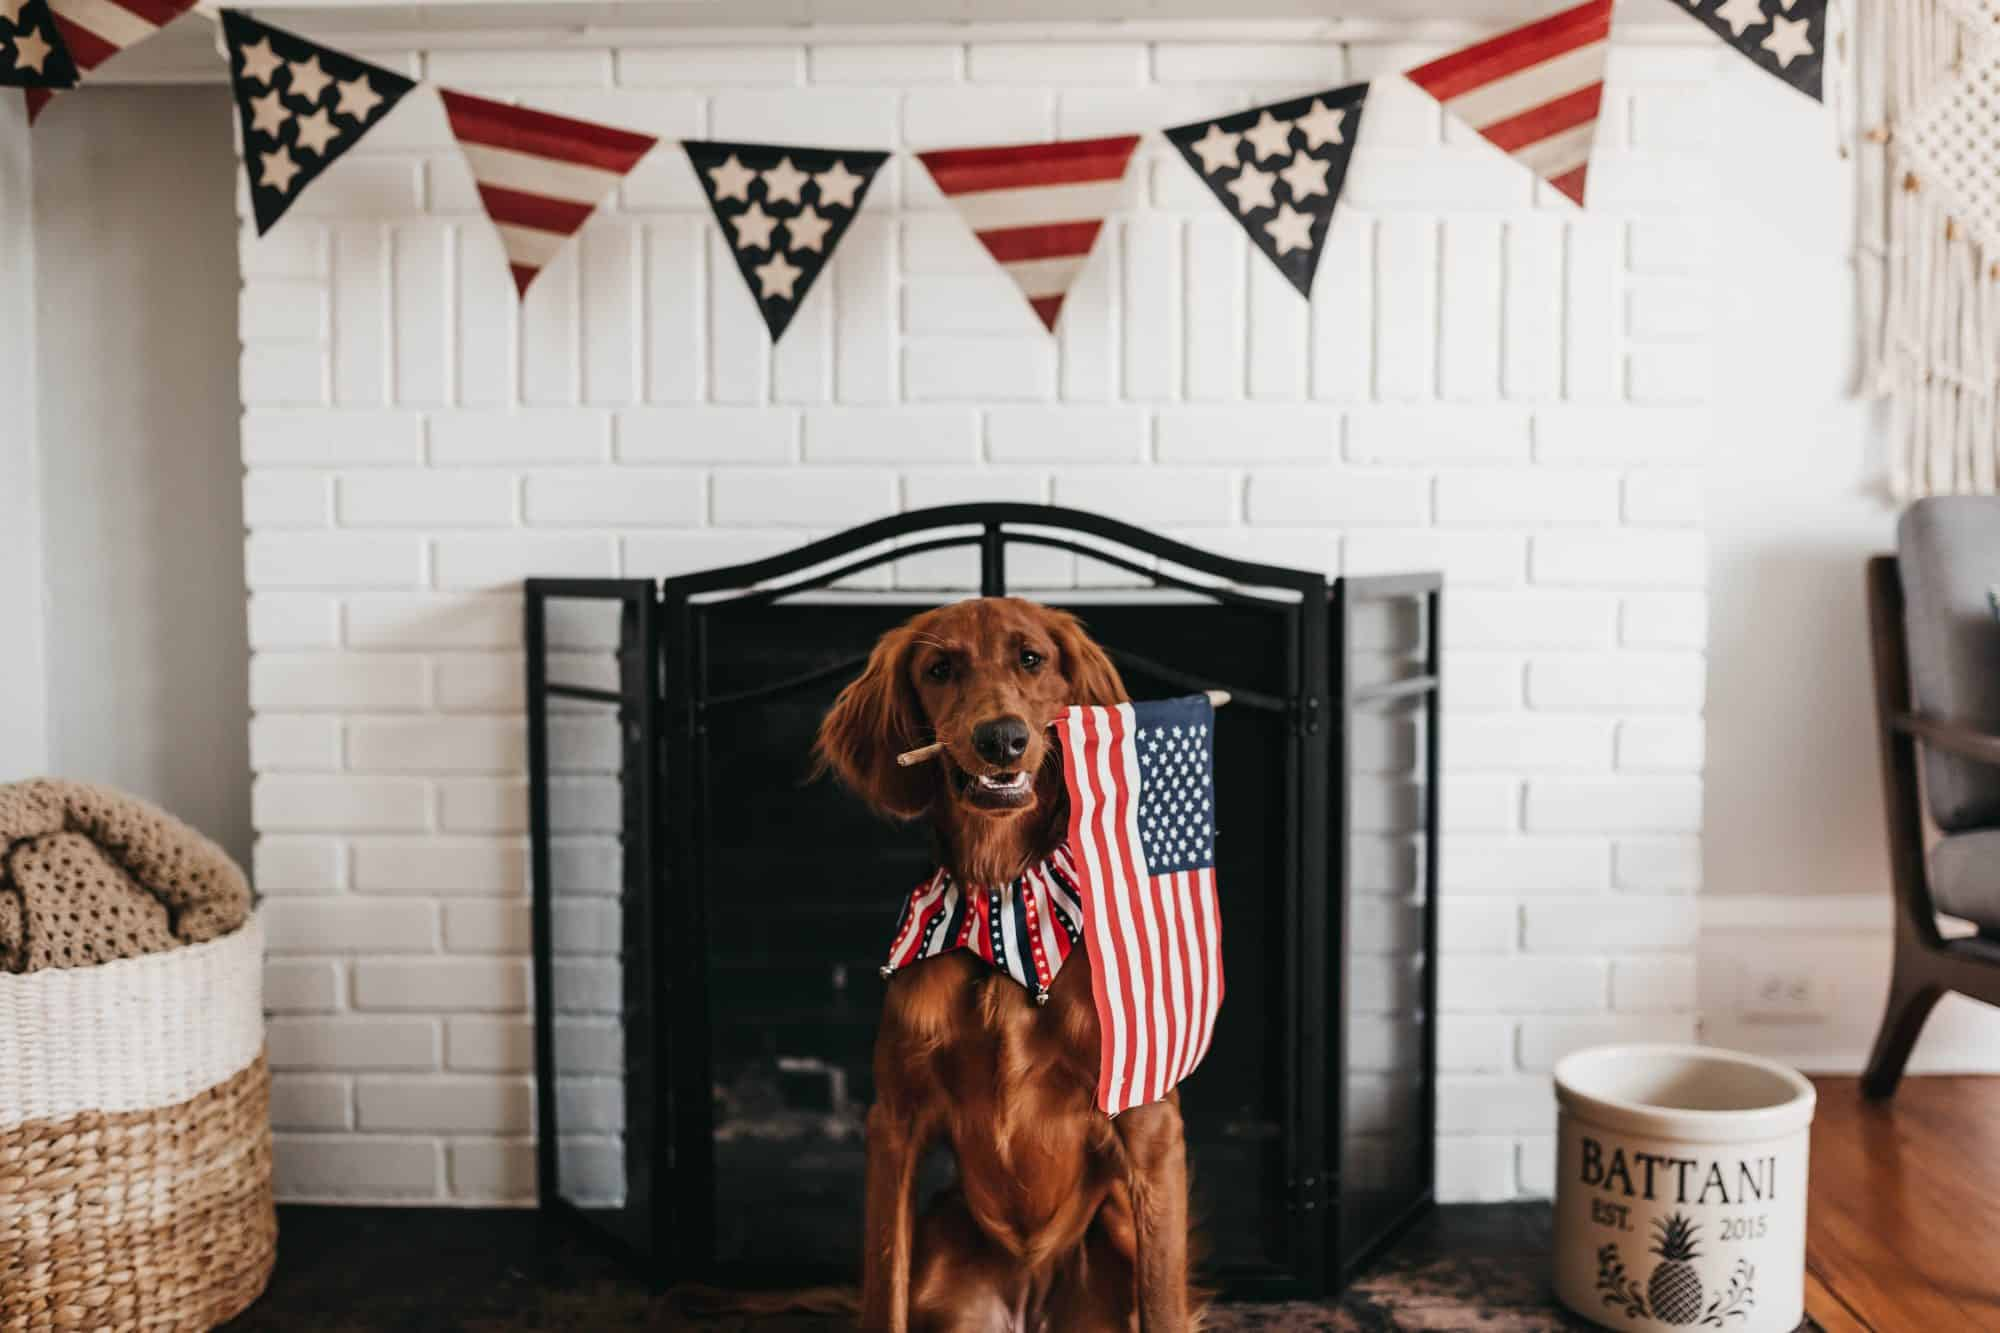 A Dog in front of fireplace, with american flag in mouth